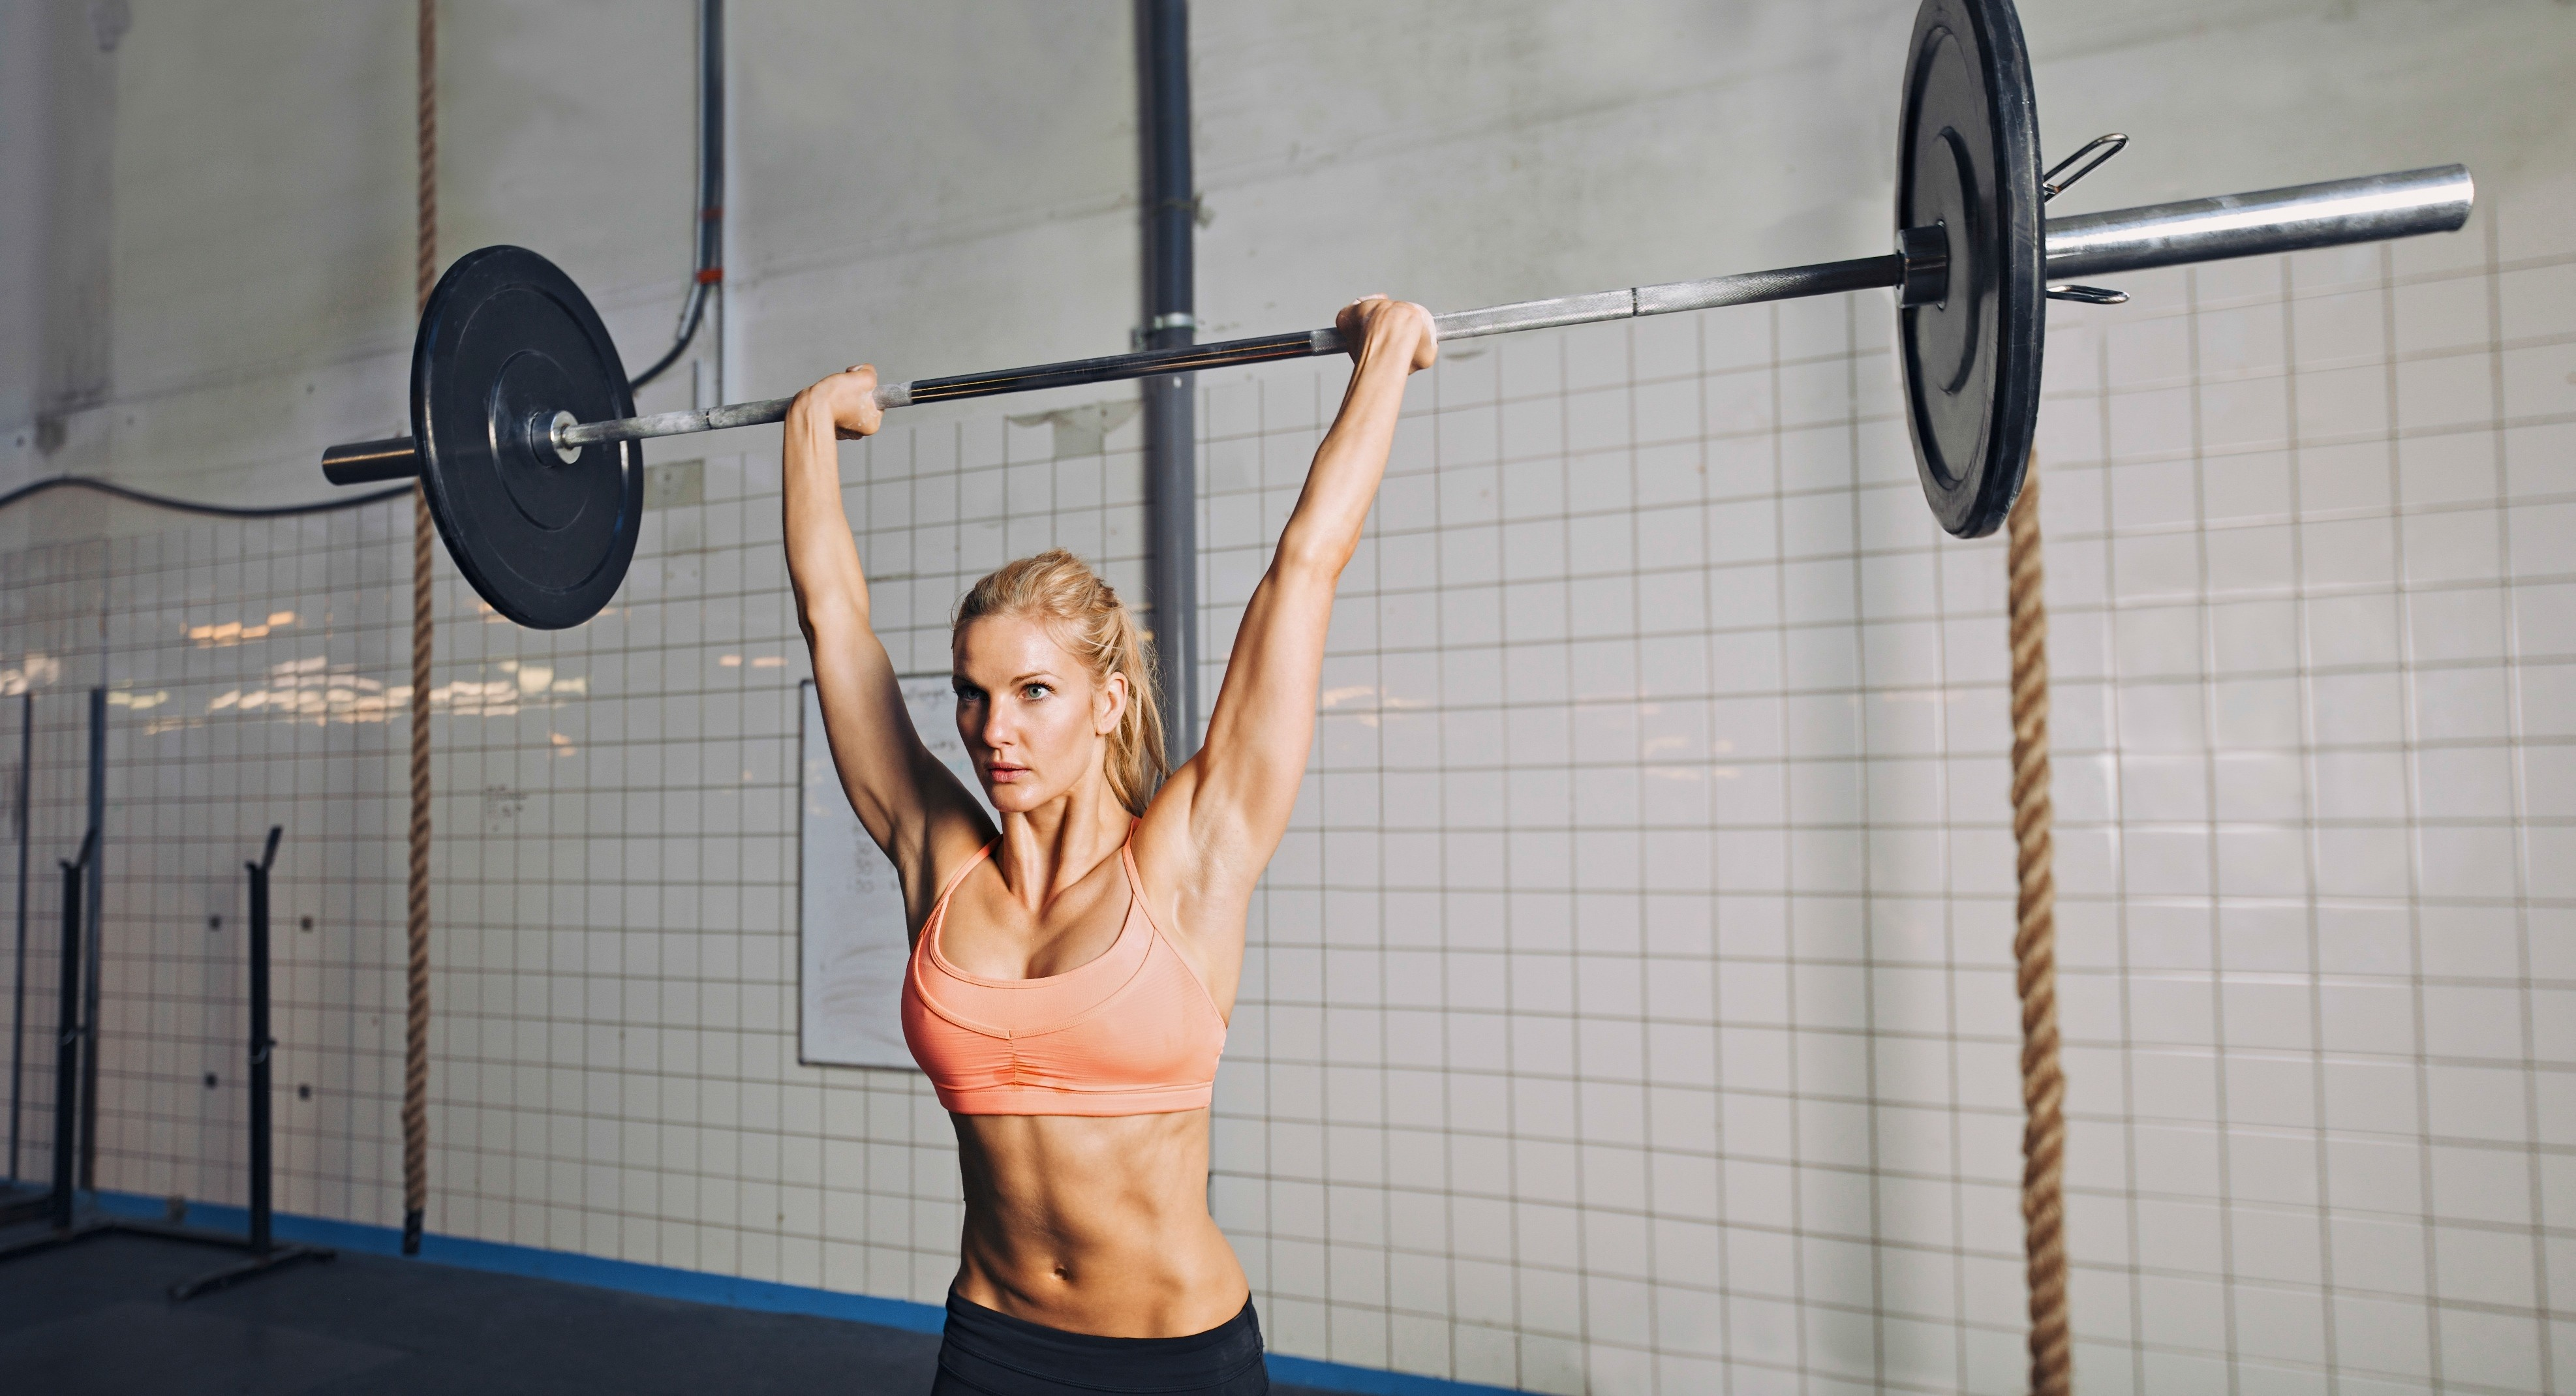 weight lifting girl hd girls 4k wallpapers images